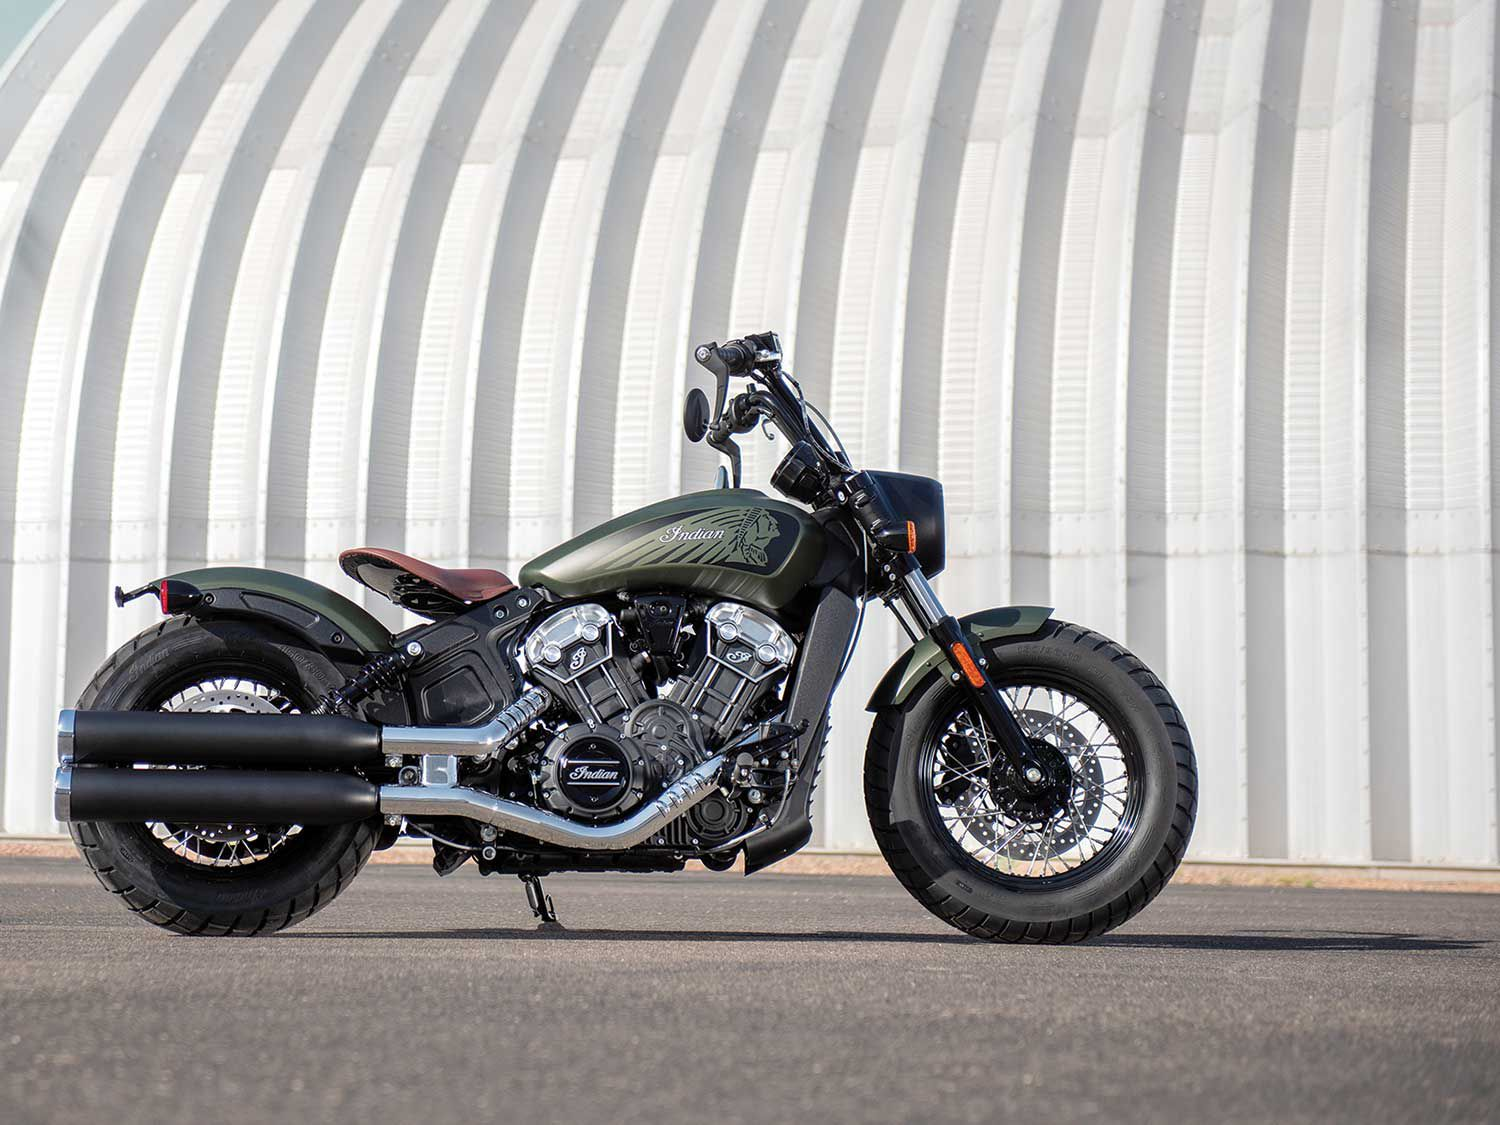 "<a  href=""https://www.motorcyclistonline.com/2020-indian-motorcycle-scout-bobber-twenty-review-mc-commute/"">2020 Indian Motorcycle Scout Bobber Twenty <em>MC Commute</em> Review</a>"